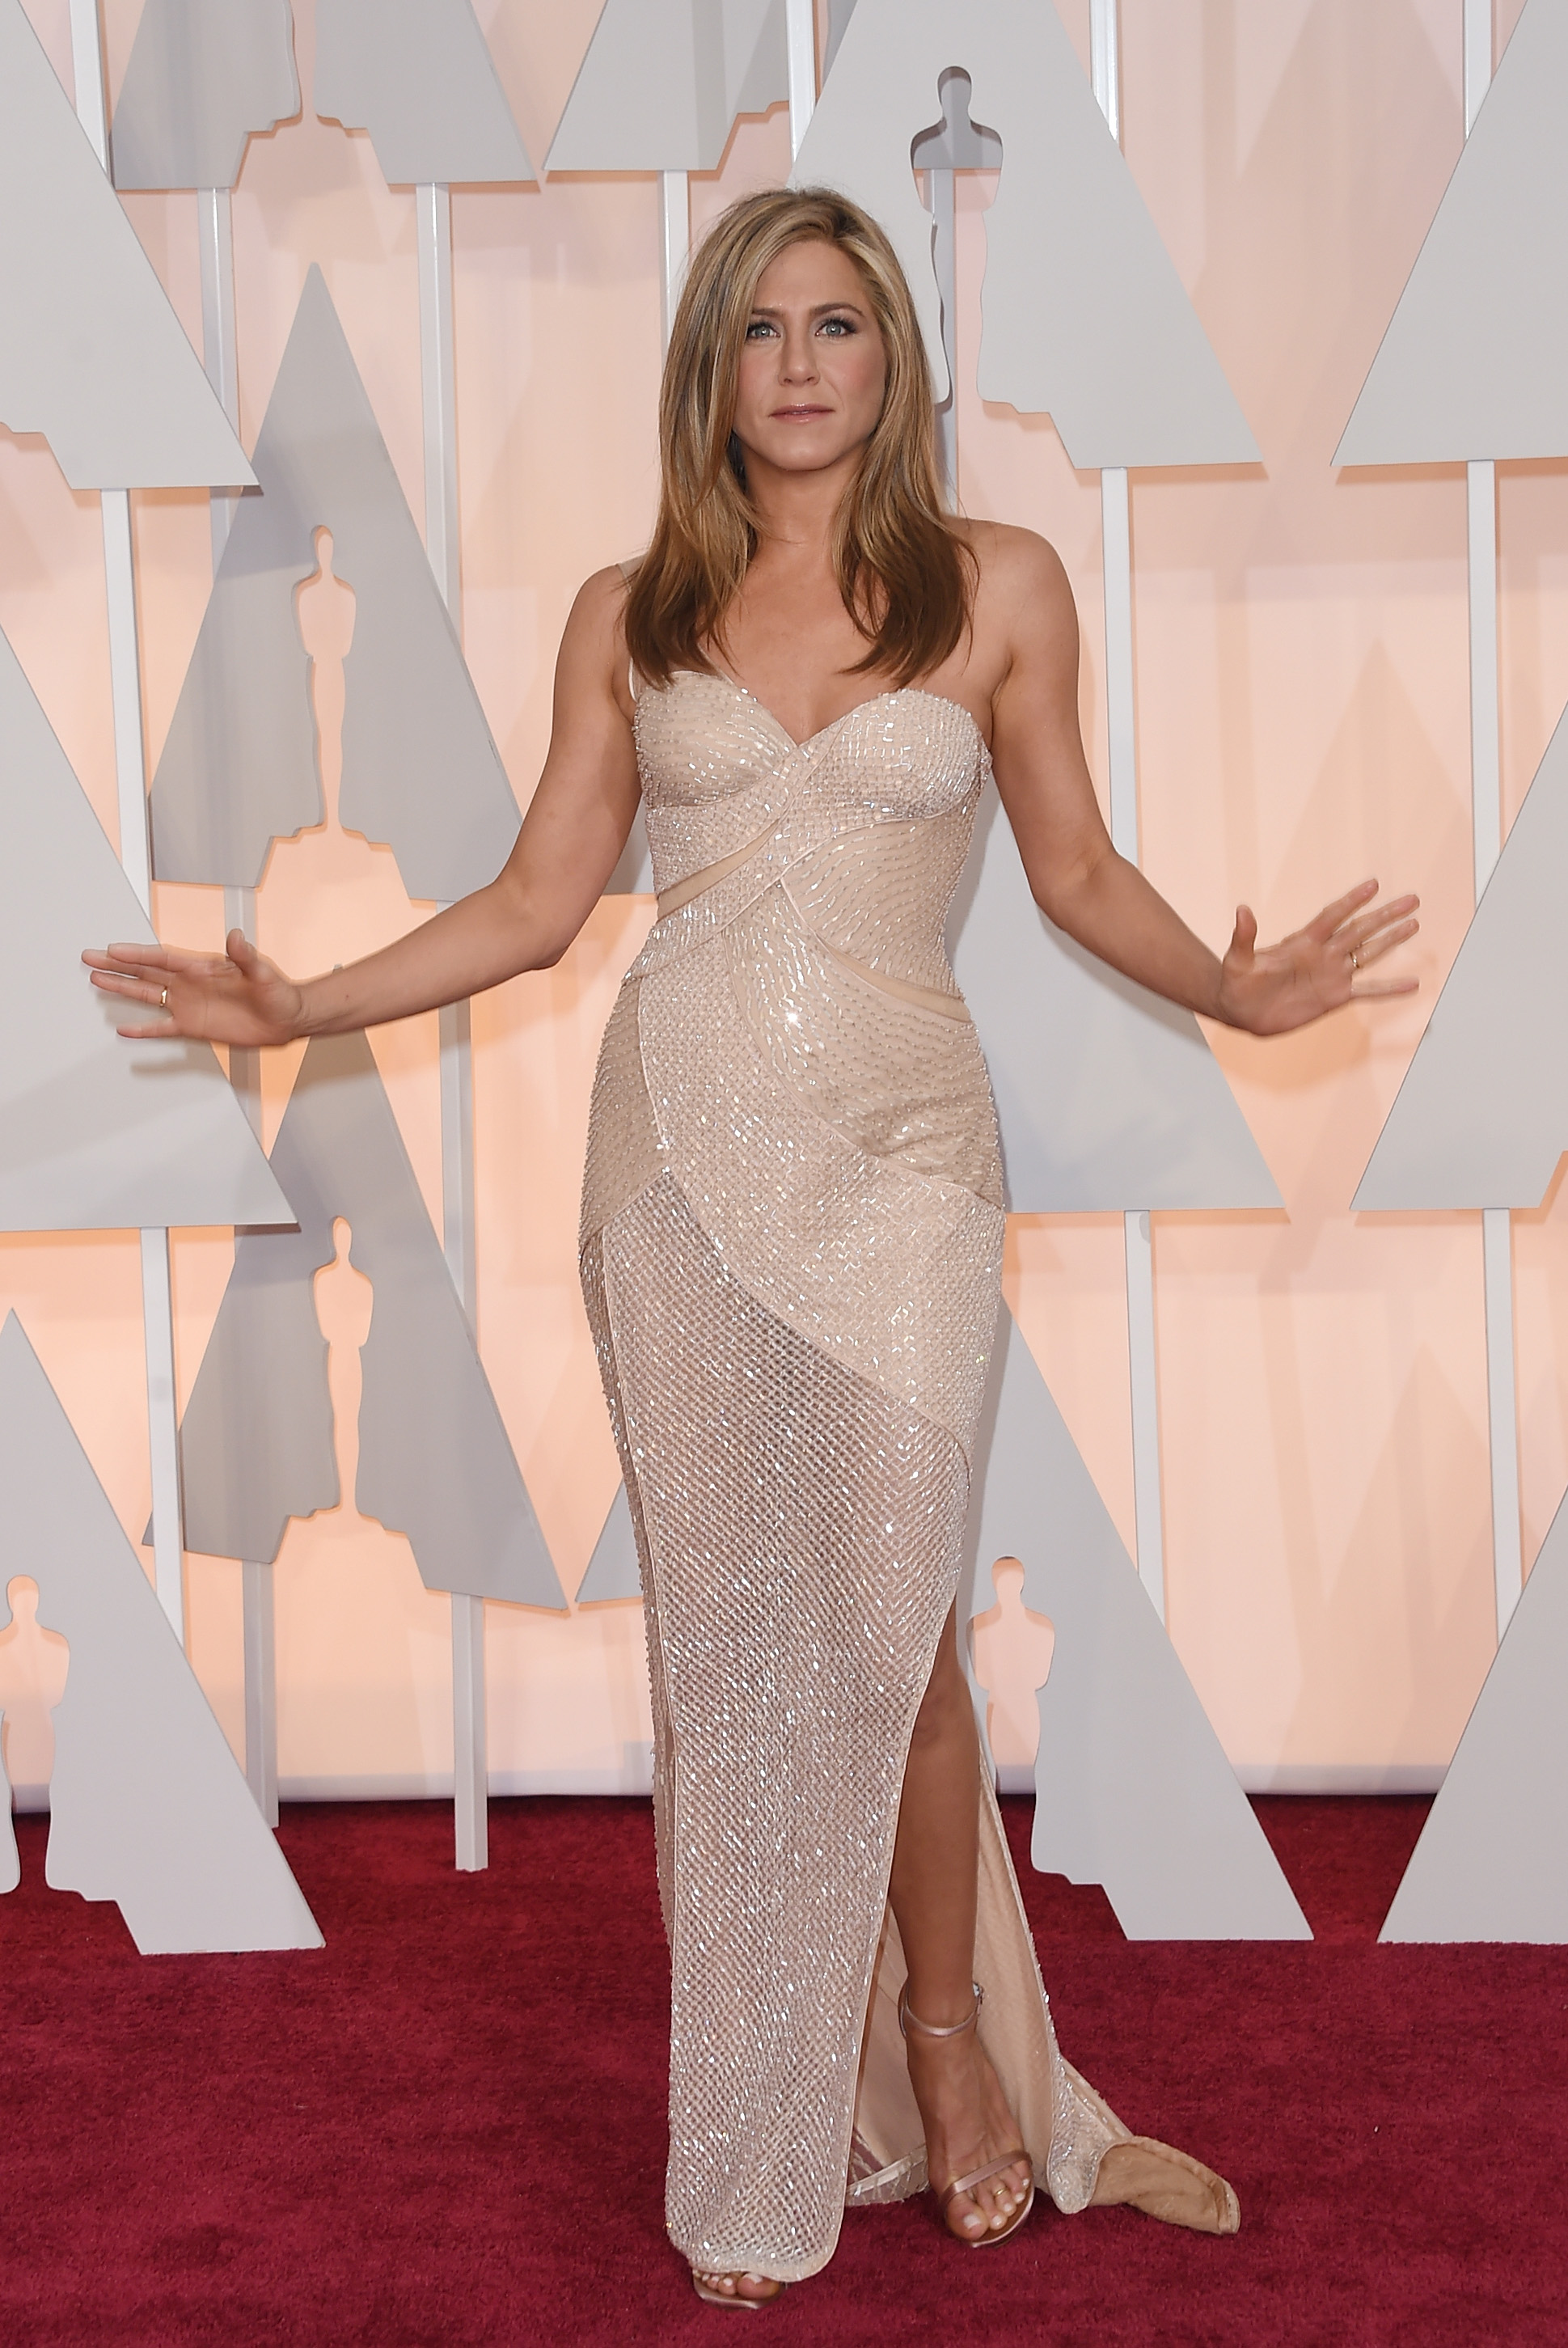 HOLLYWOOD, CA - FEBRUARY 22: Actress Jennifer Aniston attends the 87th Annual Academy Awards at Hollywood & Highland Center on February 22, 2015 in Hollywood, California. (Photo by Jason Merritt/Getty Images)